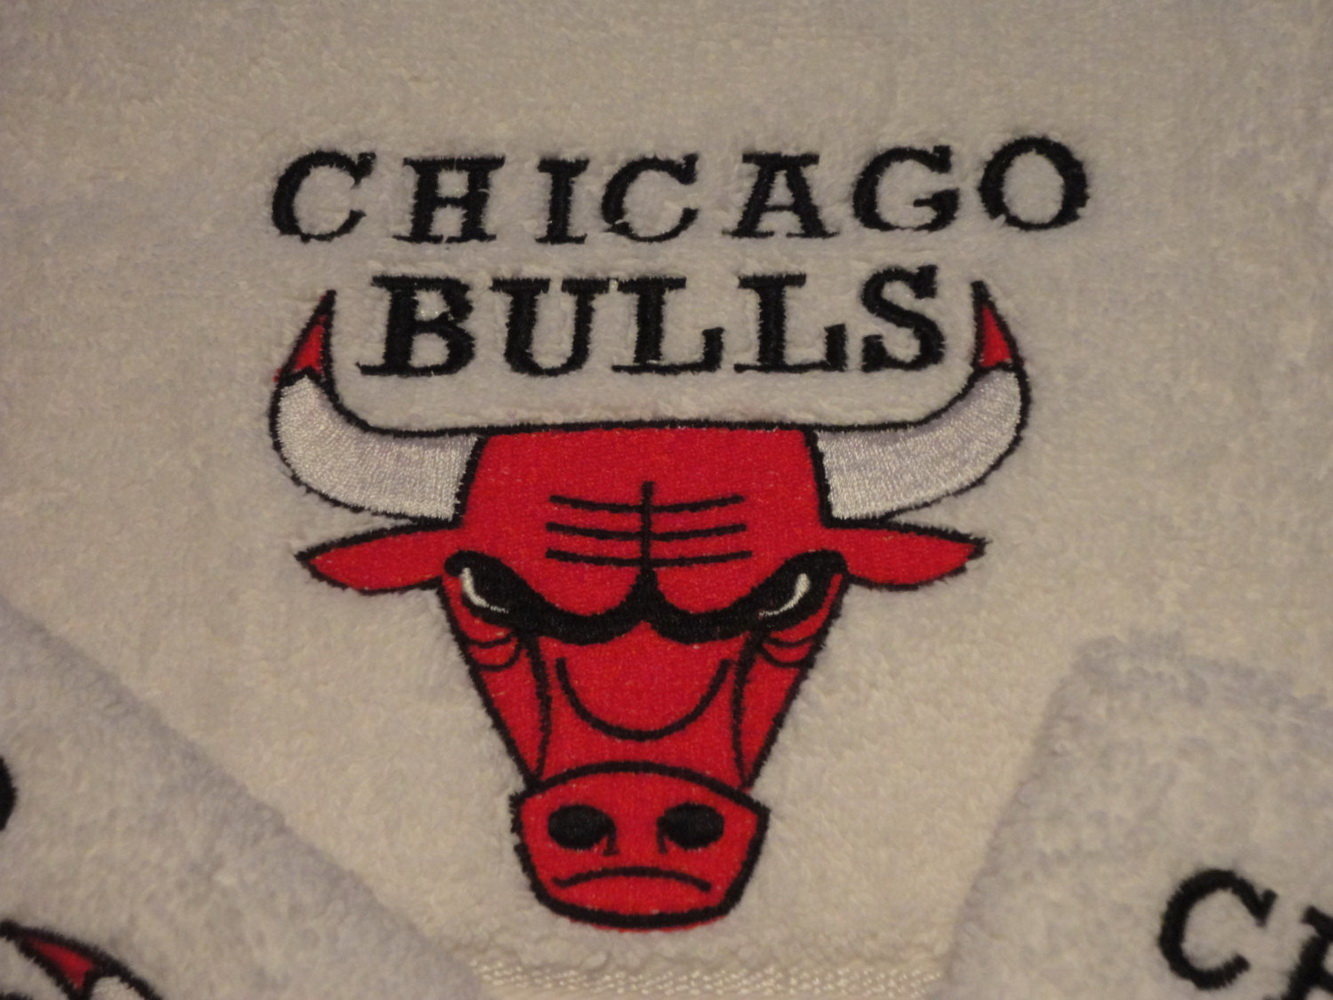 White bath towel with Chicago Bulls embroidered logo on it